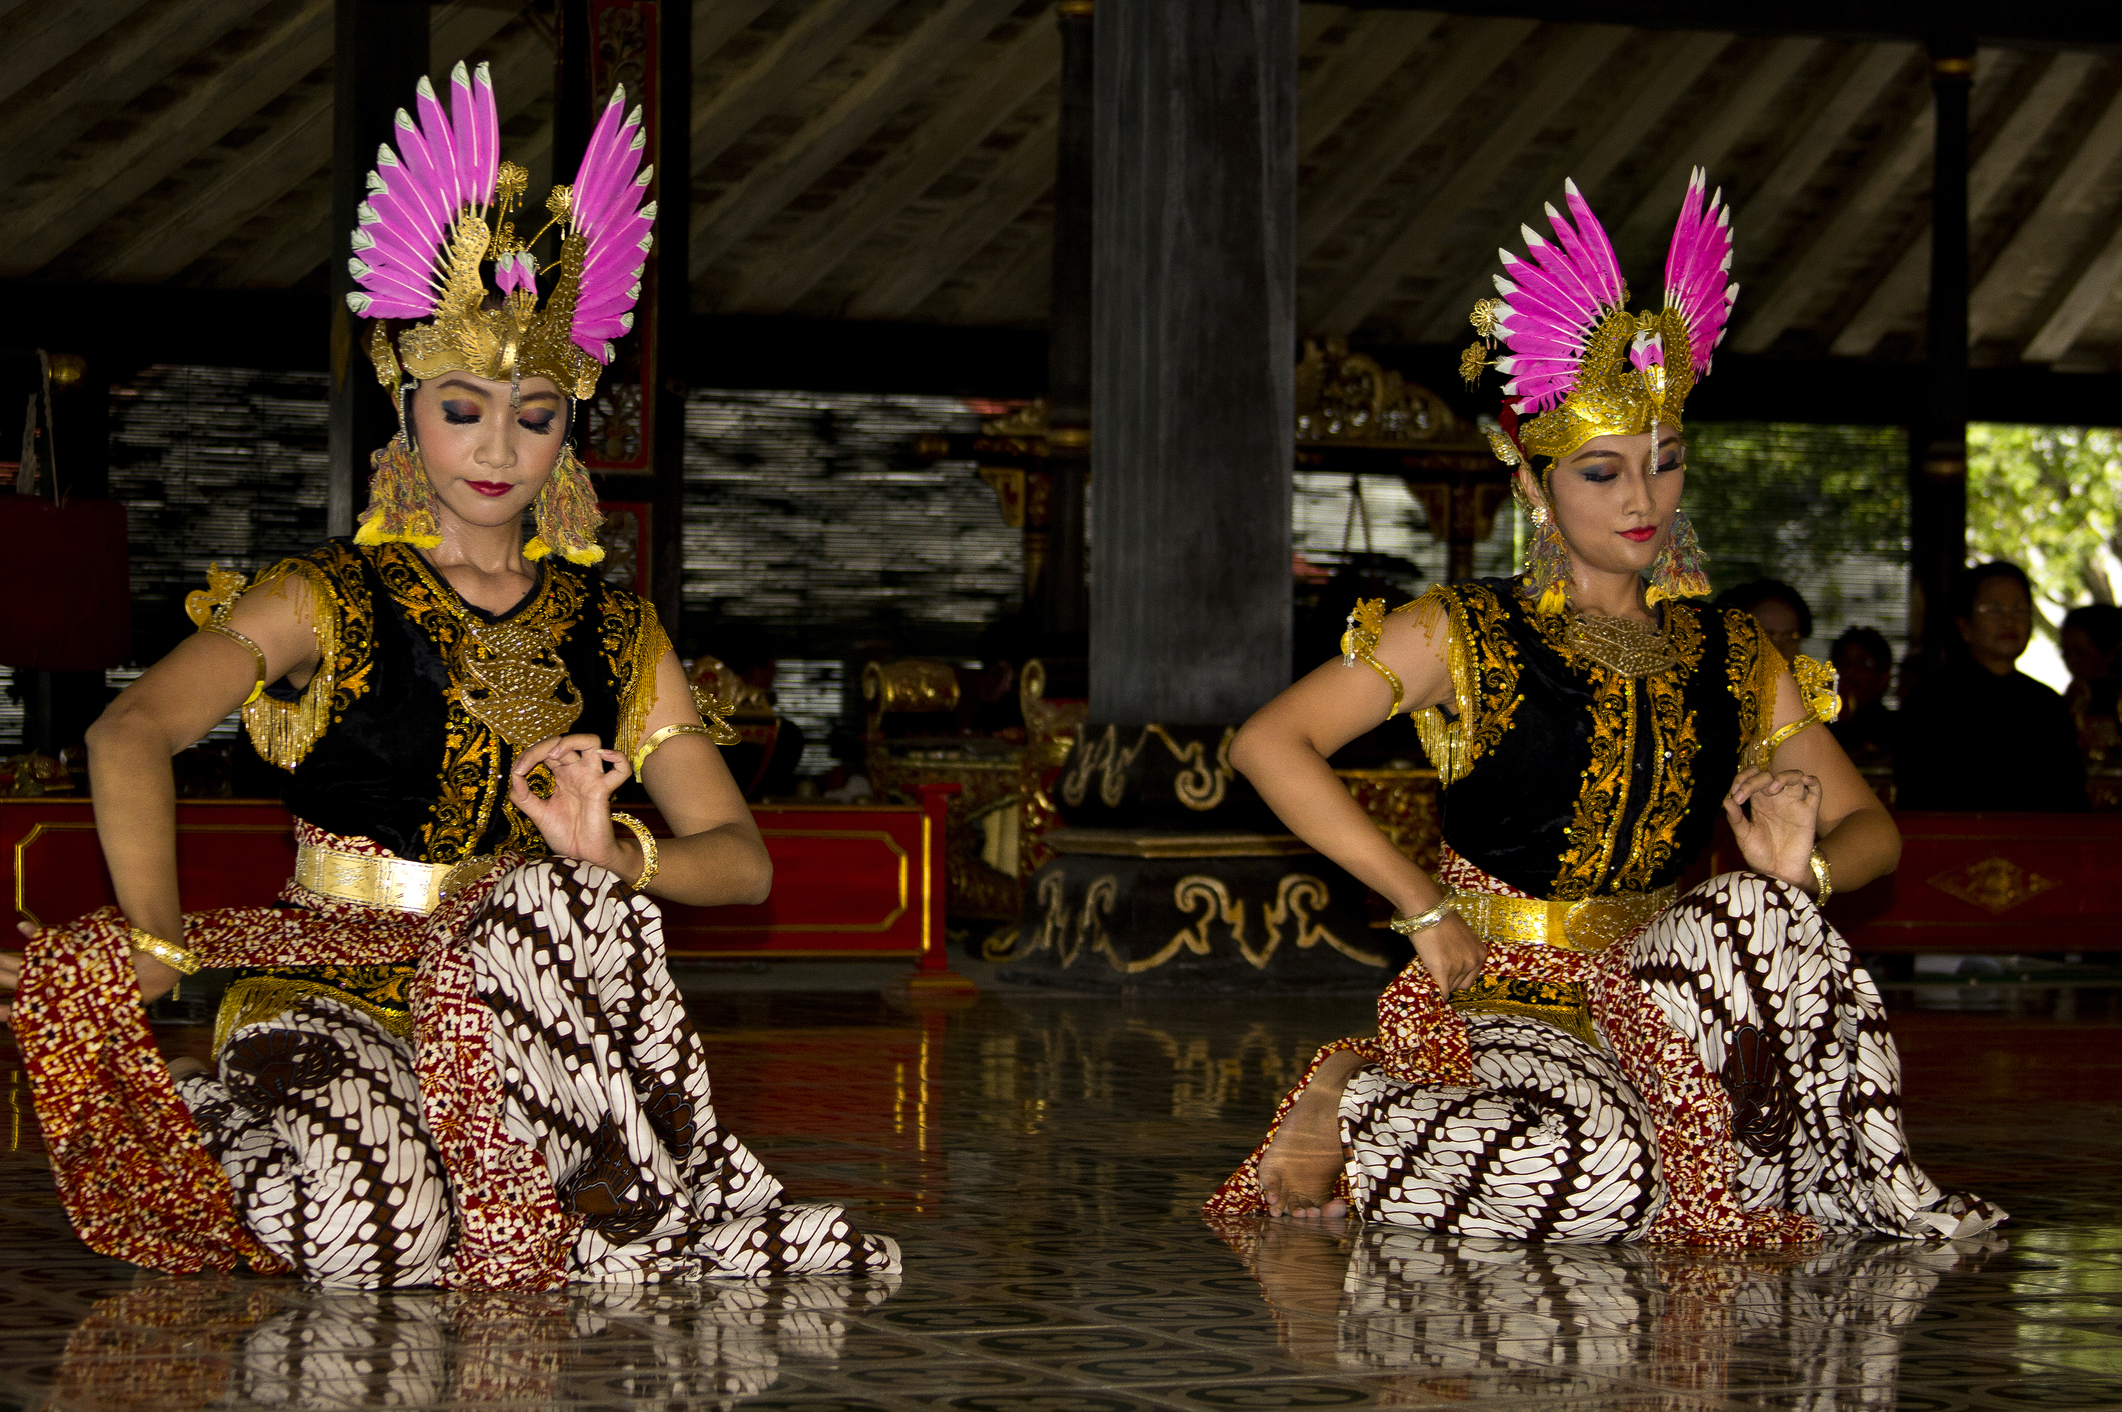 Custom Travel Planner Network-Indonesia-Yogyakarta Dancers